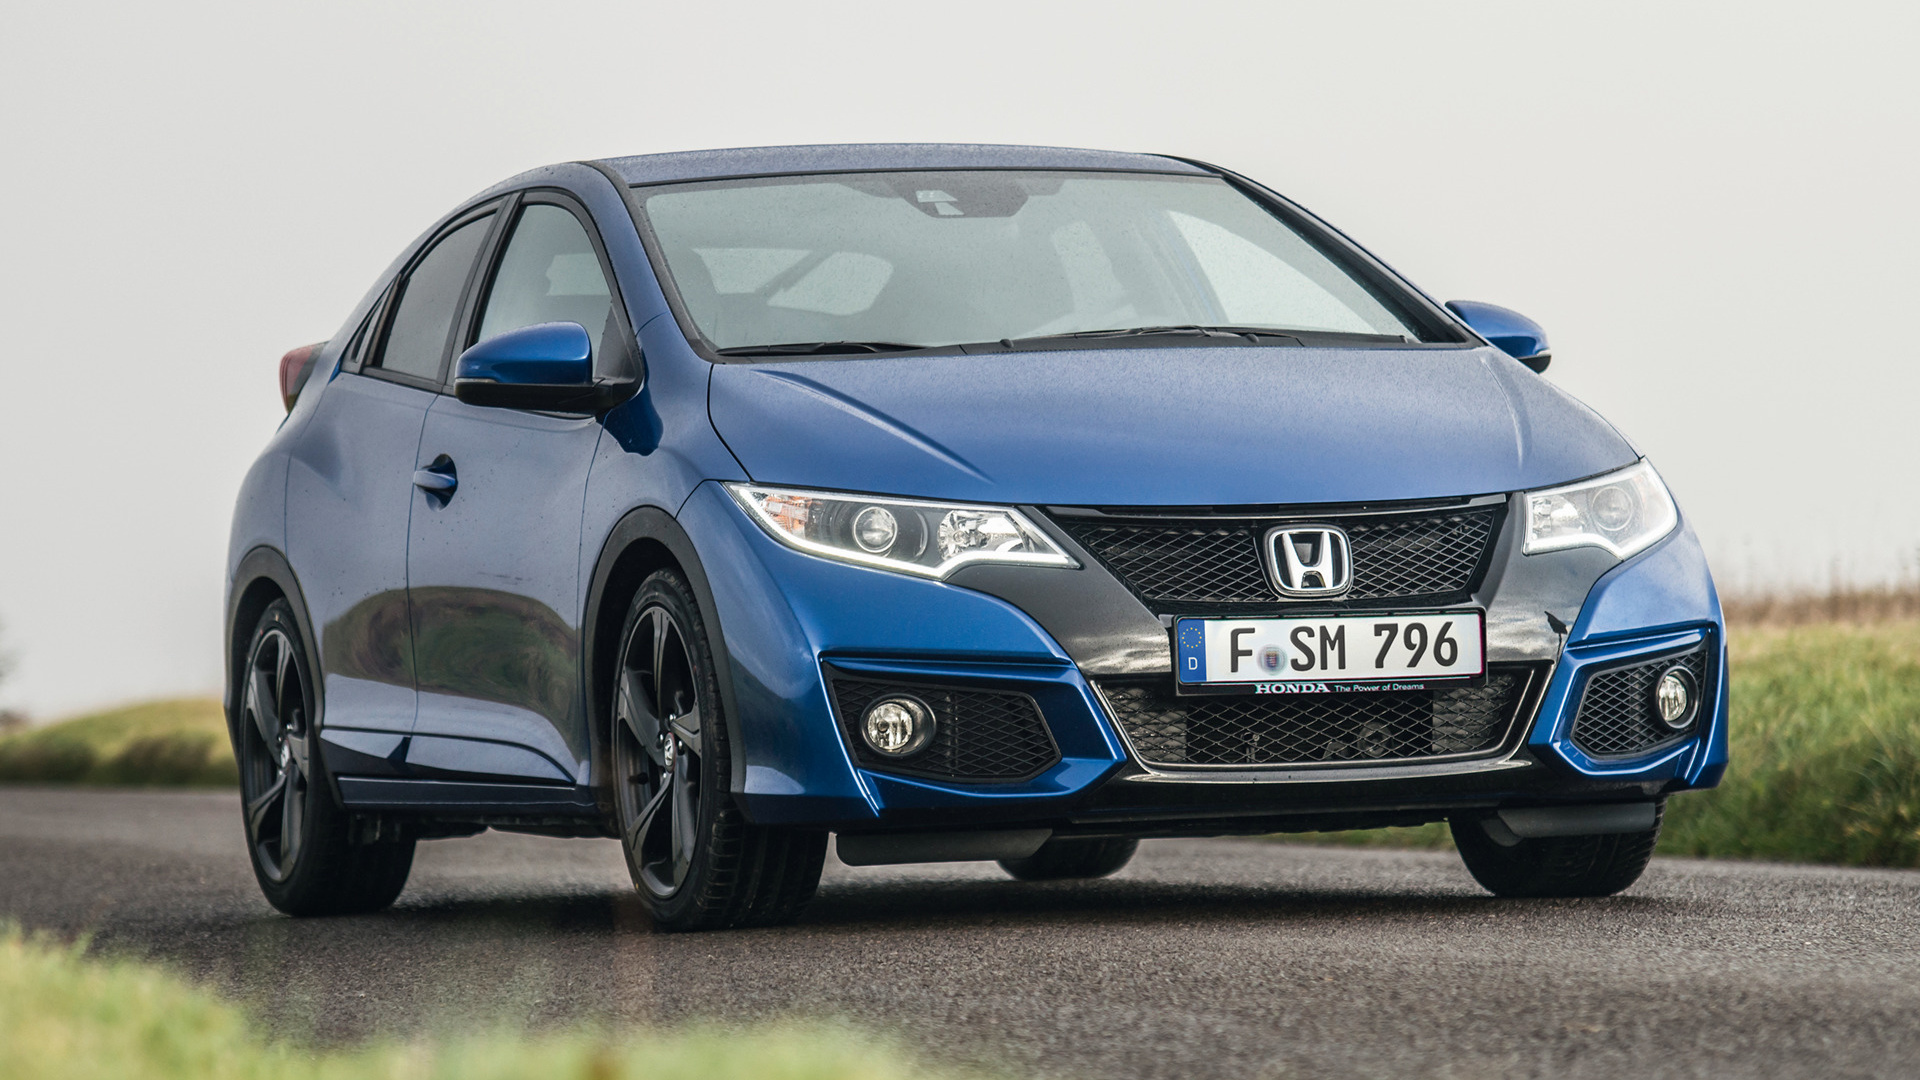 Honda Civic Sport Wallpaper Iphone: Honda Civic Sport (2015) Wallpapers And HD Images